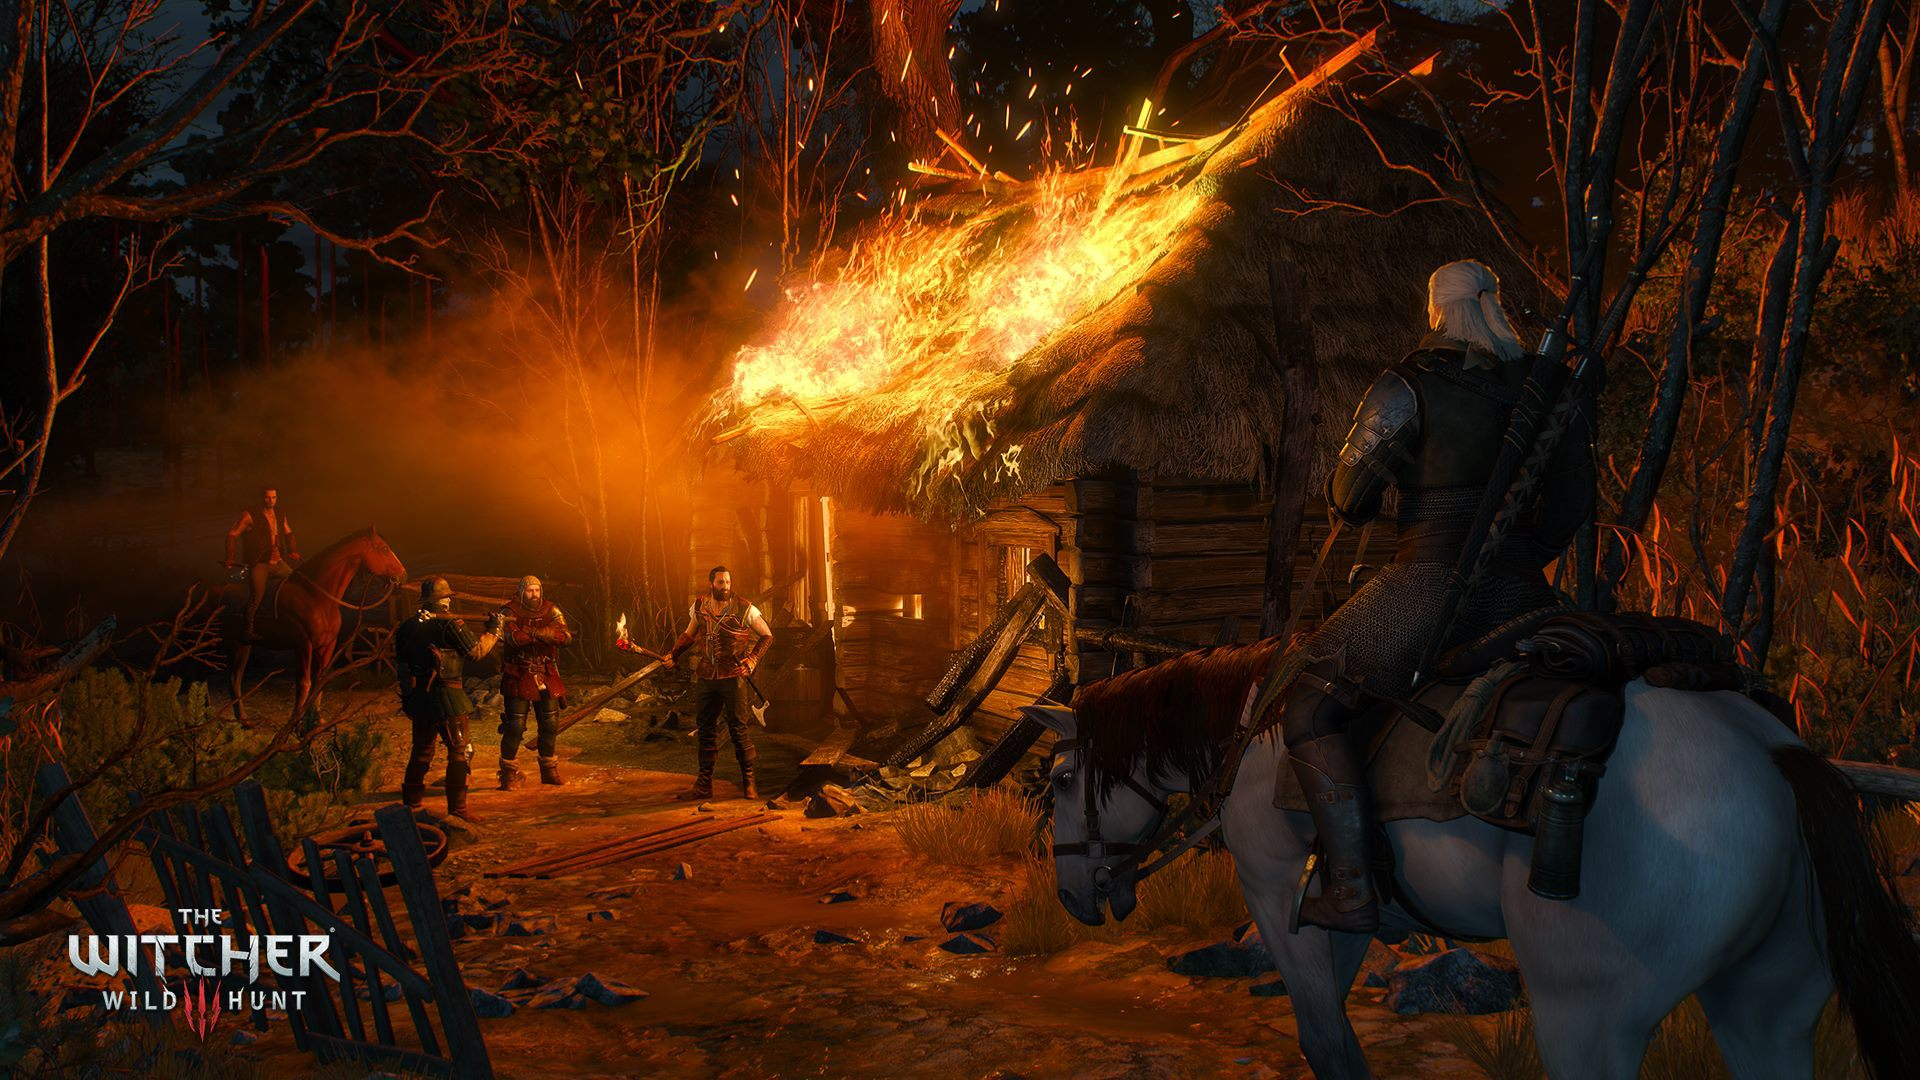 the witcher 3 wild hunt wallpapers images photos pictures